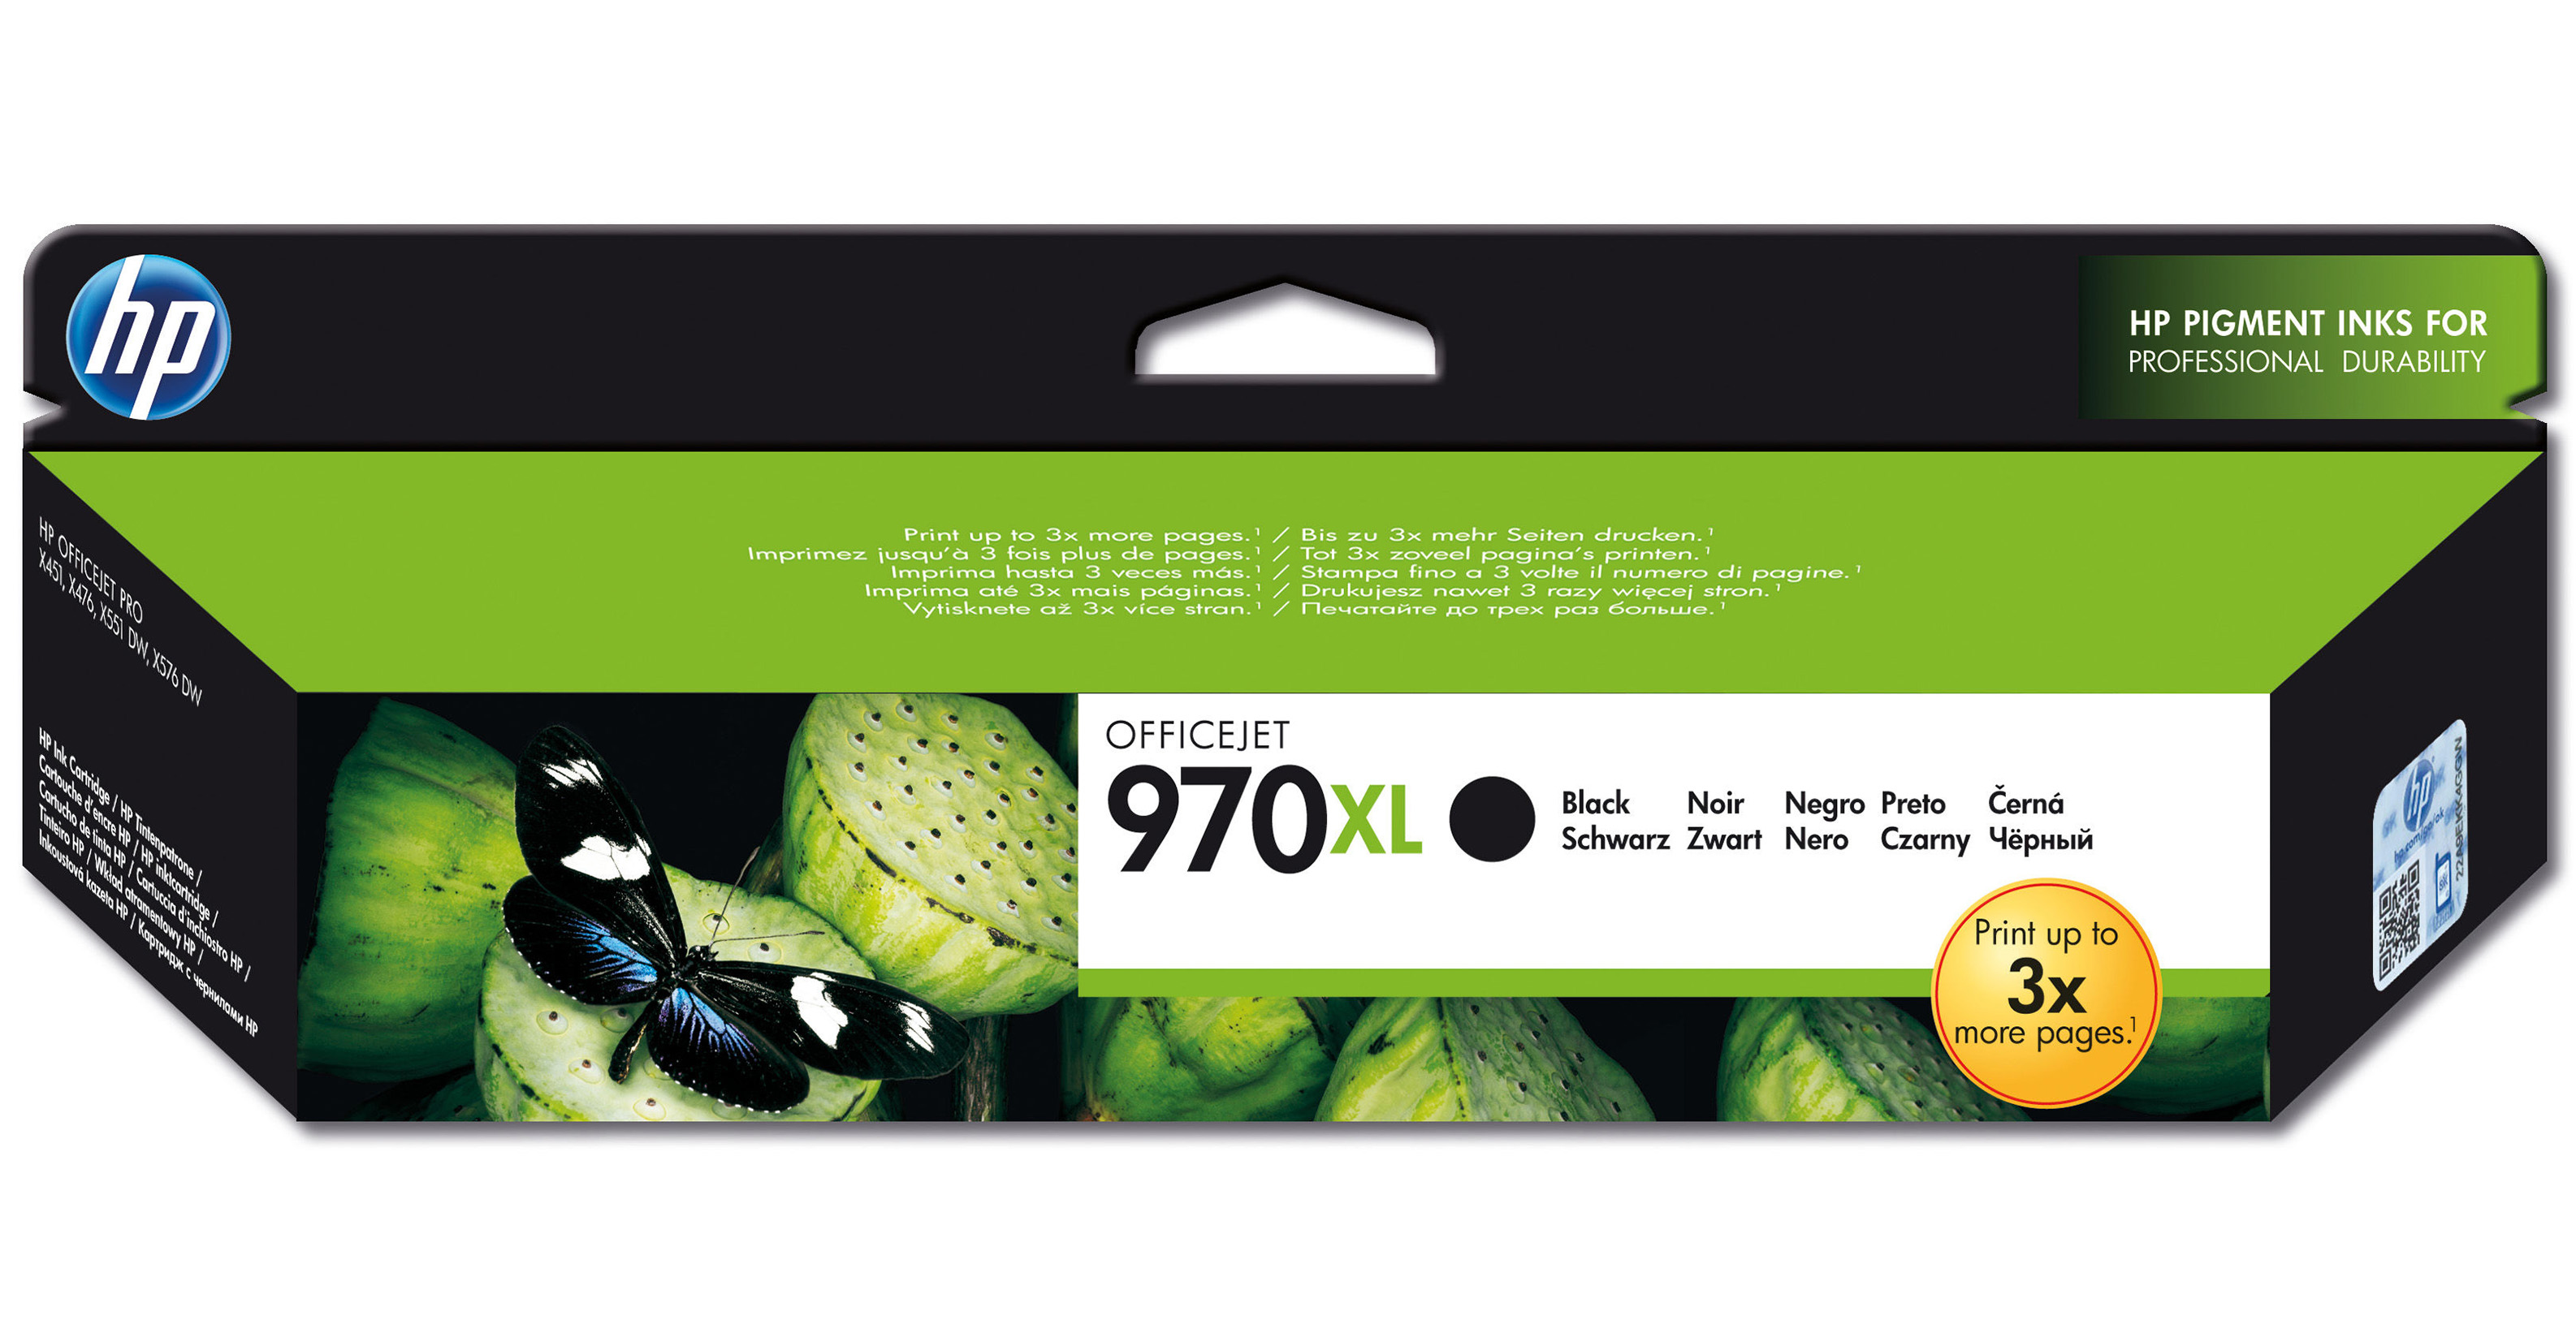 Hpcn625ae      Hp 970xl Black Officejet       Ink Cartridge                                                - UF01